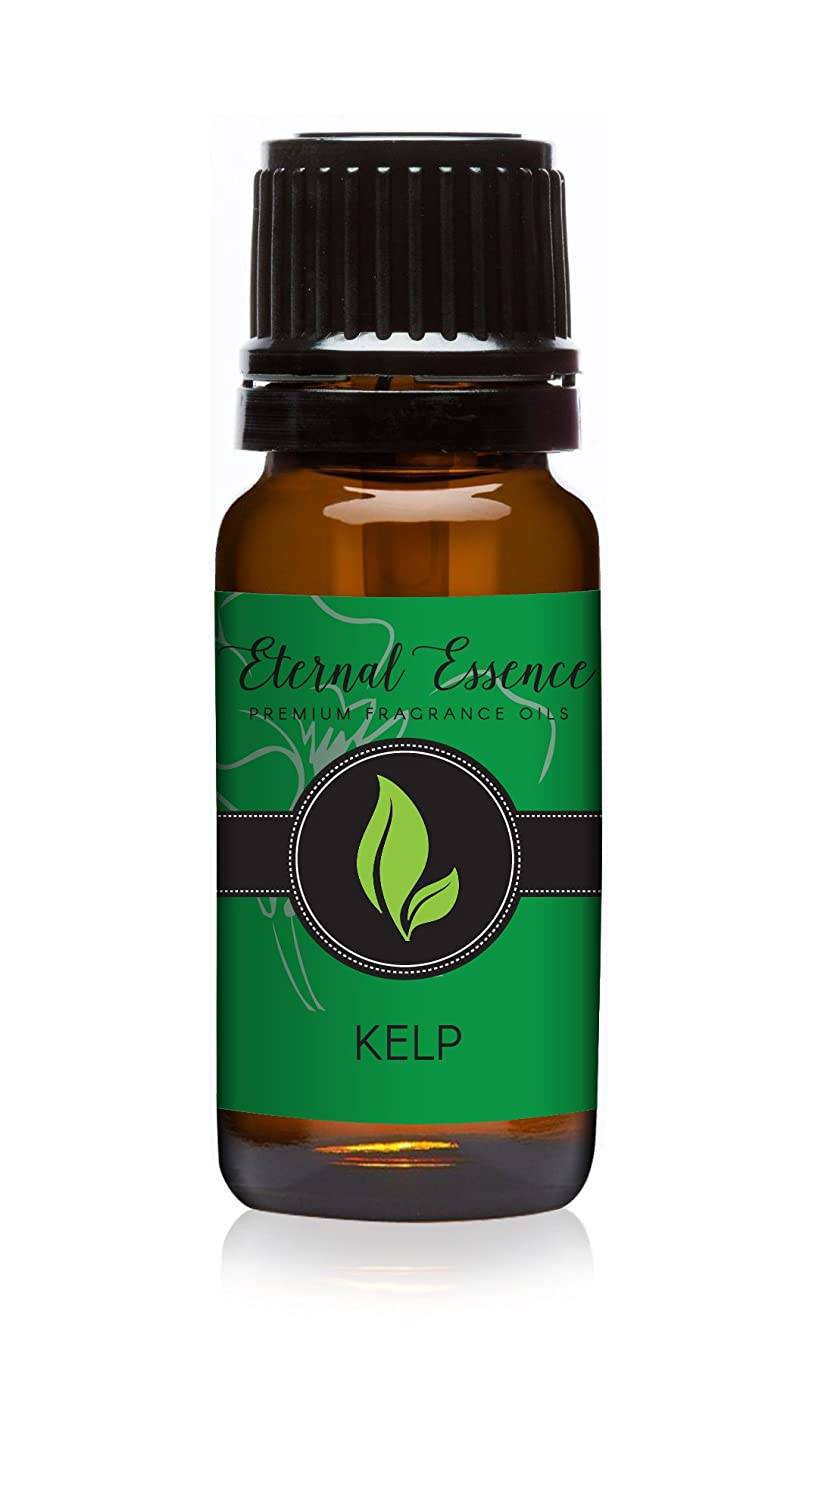 Kelp Premium Fragrance Oil - Scented Oil - 10ml